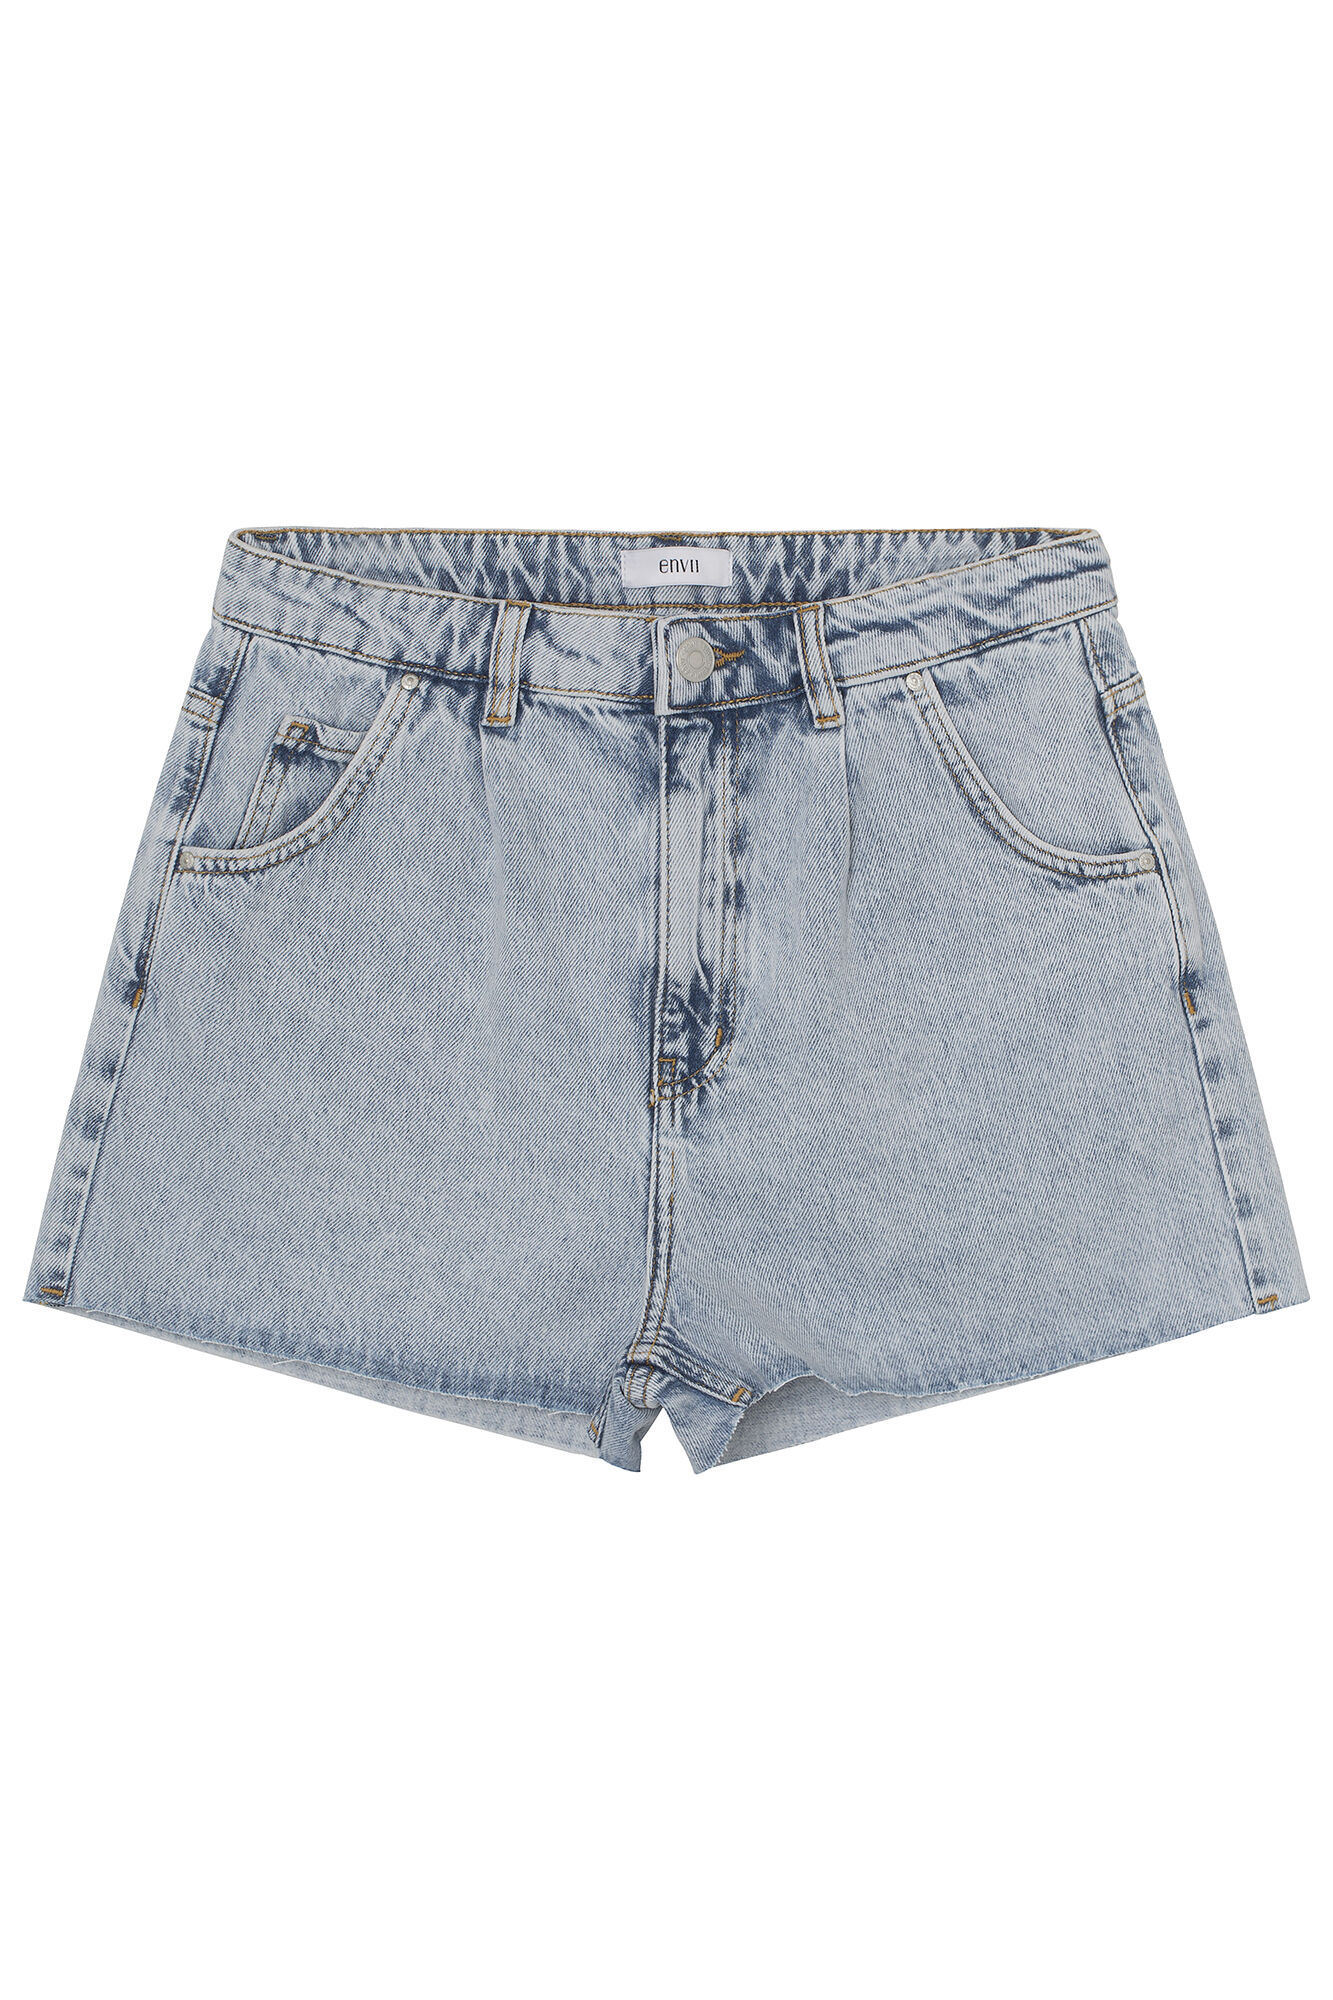 ENBRITTA SHORTS 6742, VINTAGE LIGHT BLUE